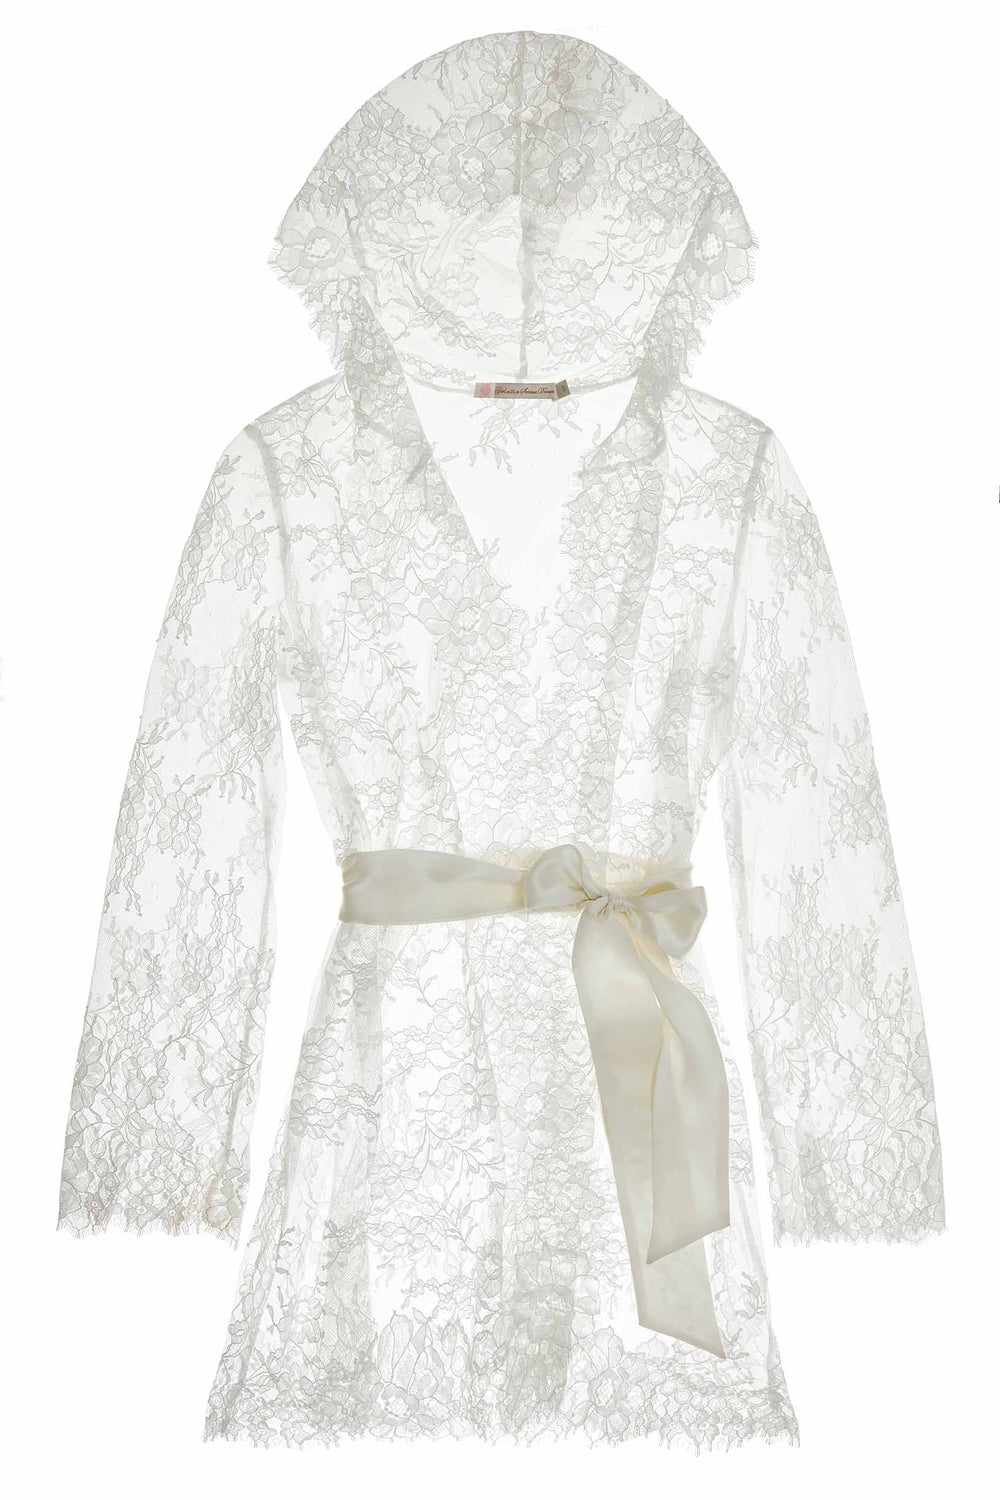 Camellia hooded lace robe in Ivory Bridal Trousseau Gift